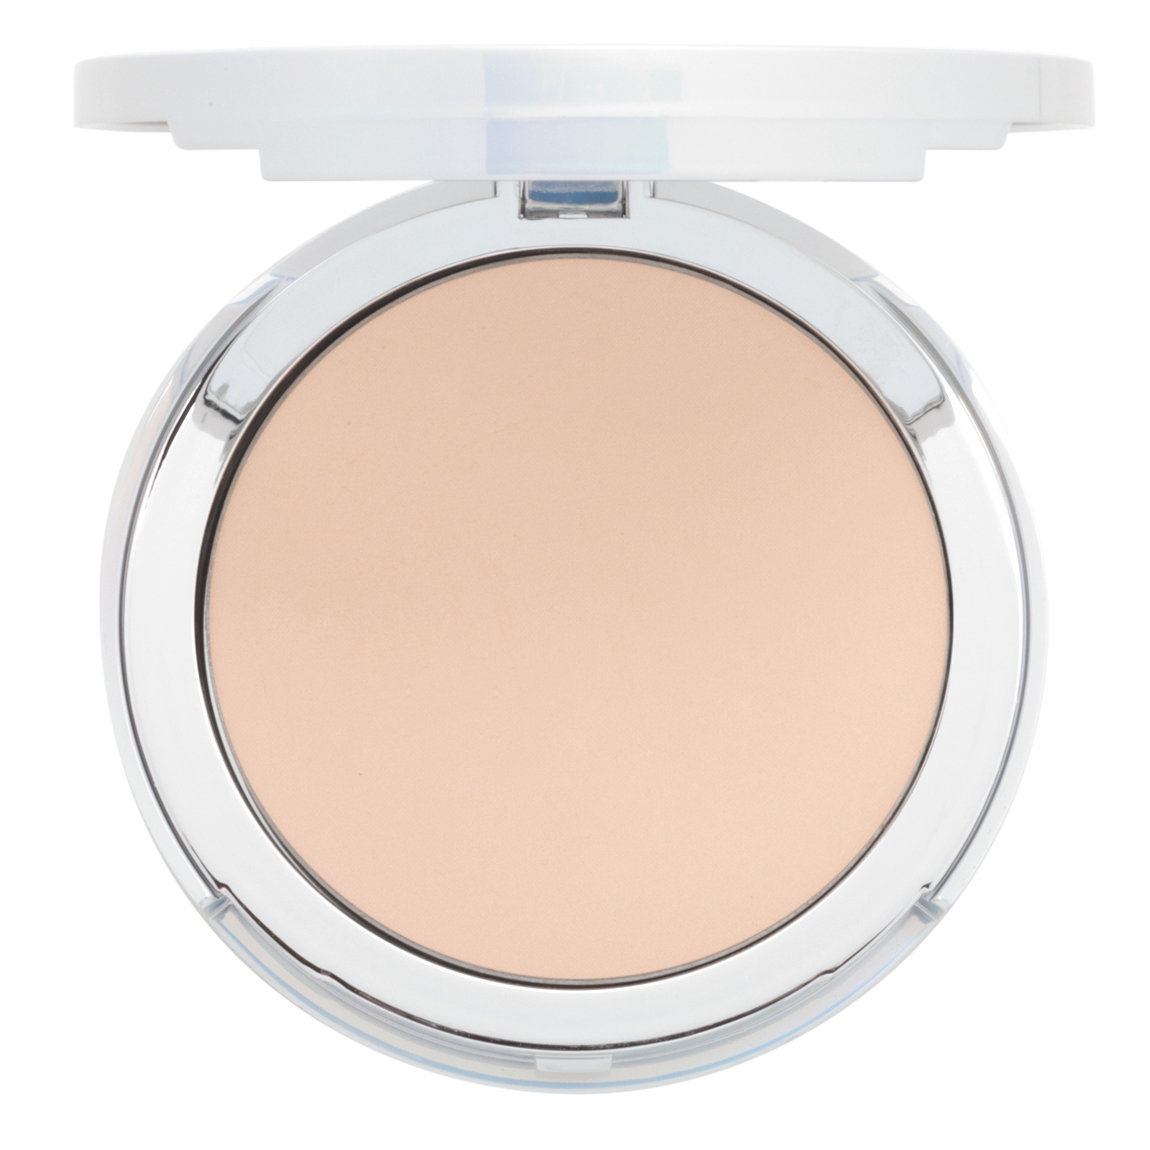 IT Cosmetics  Your Skin But Better CC+ Airbrush Perfecting Powder SPF 50+ Fair product swatch.